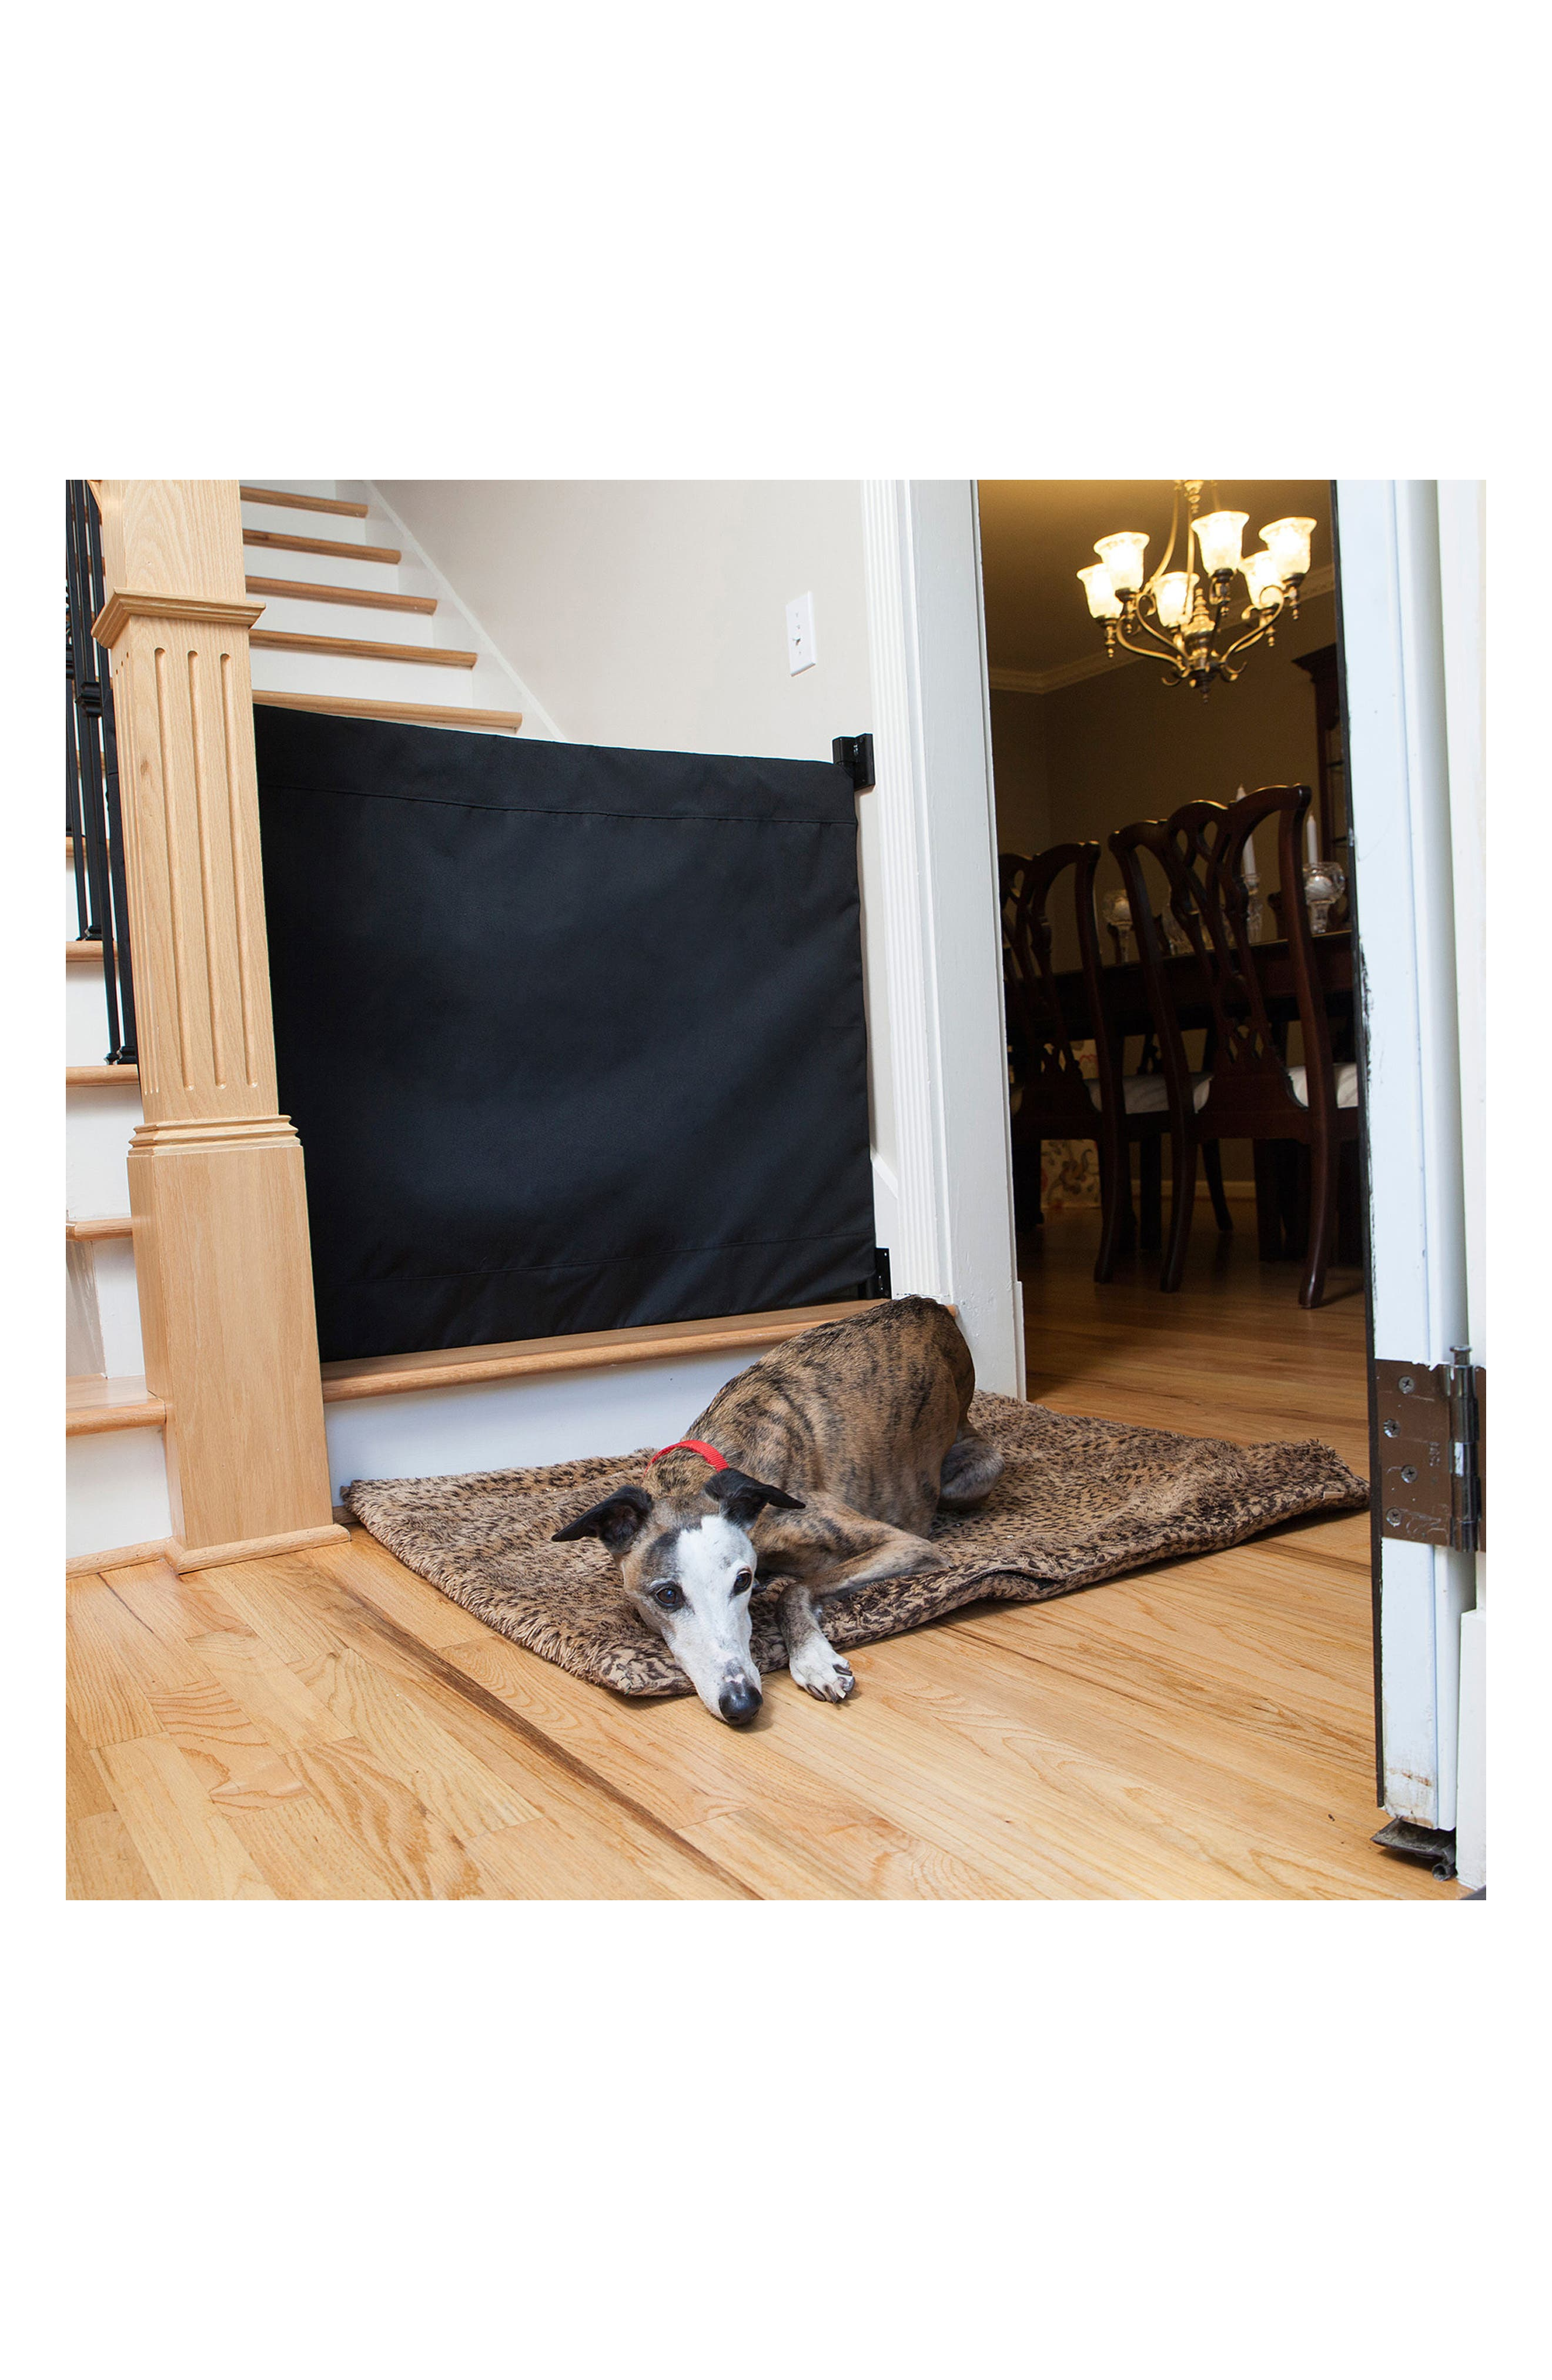 Wall to Banister Indoor Outdoor Safety Gate,                             Alternate thumbnail 12, color,                             002